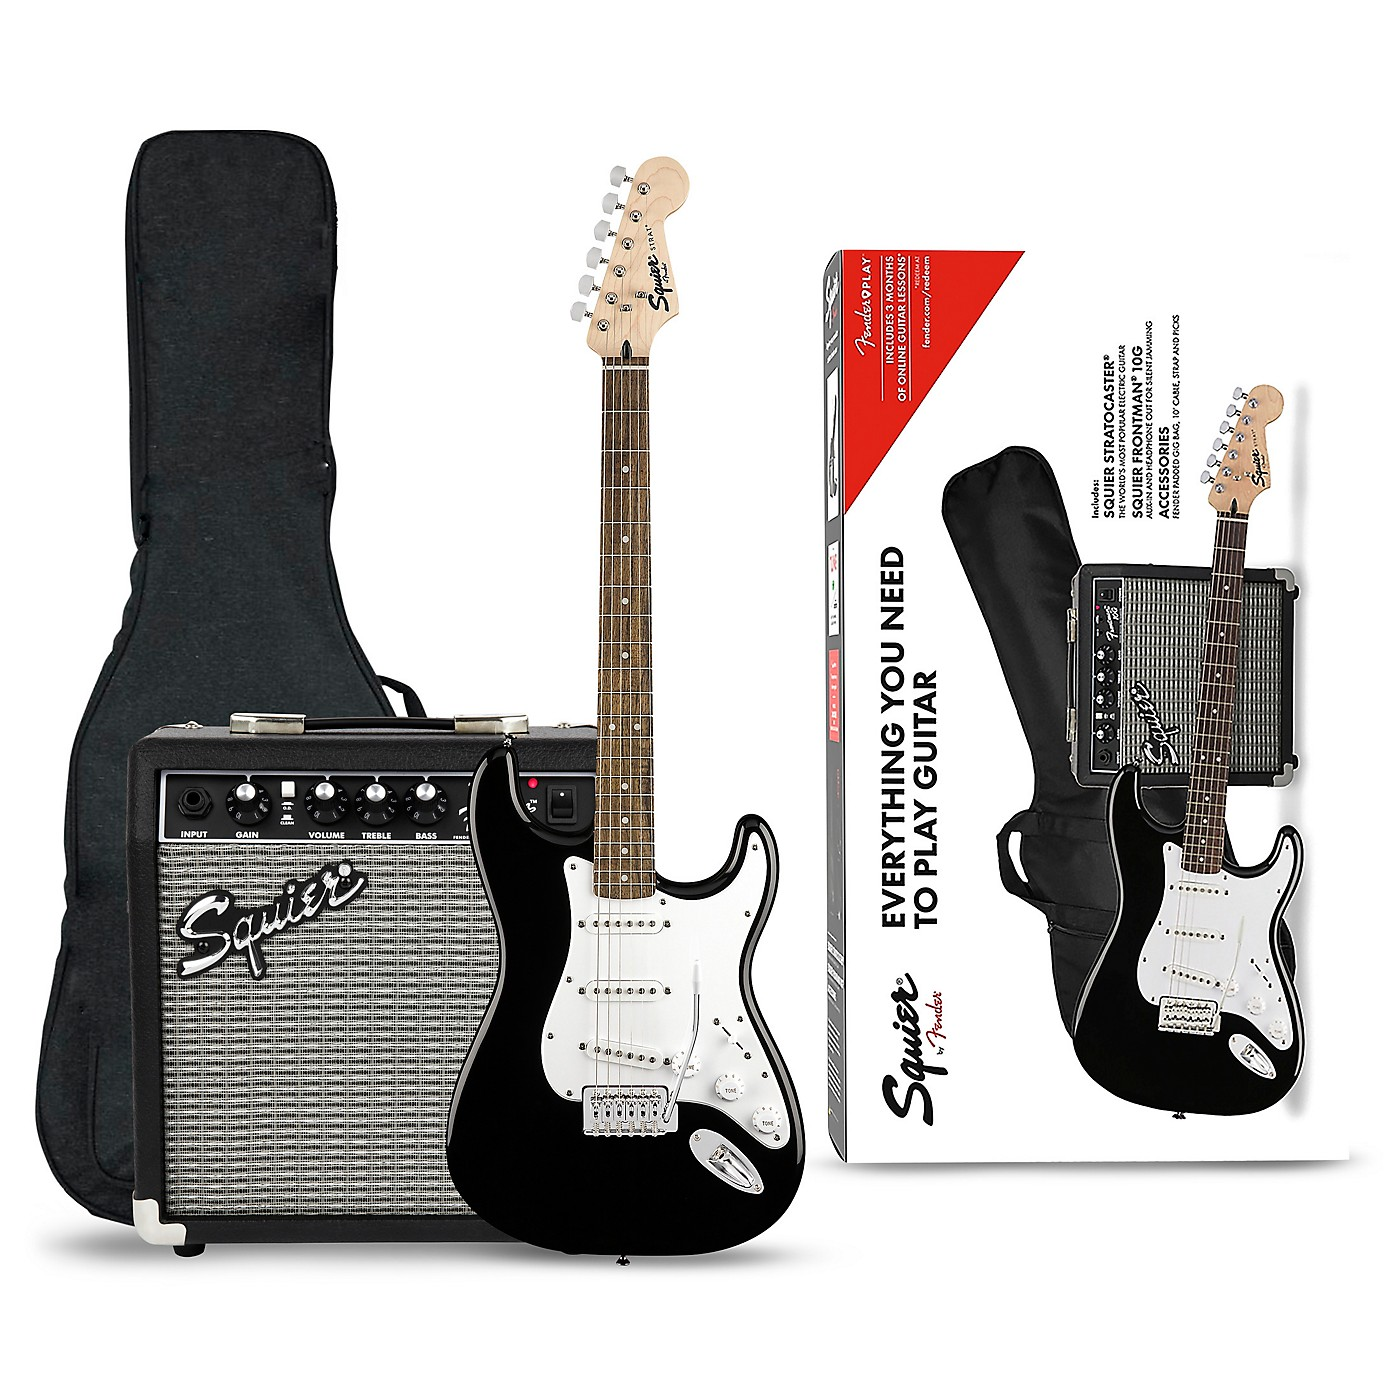 Squier Stratocaster Electric Guitar Pack with Fender Frontman 10G Amp thumbnail